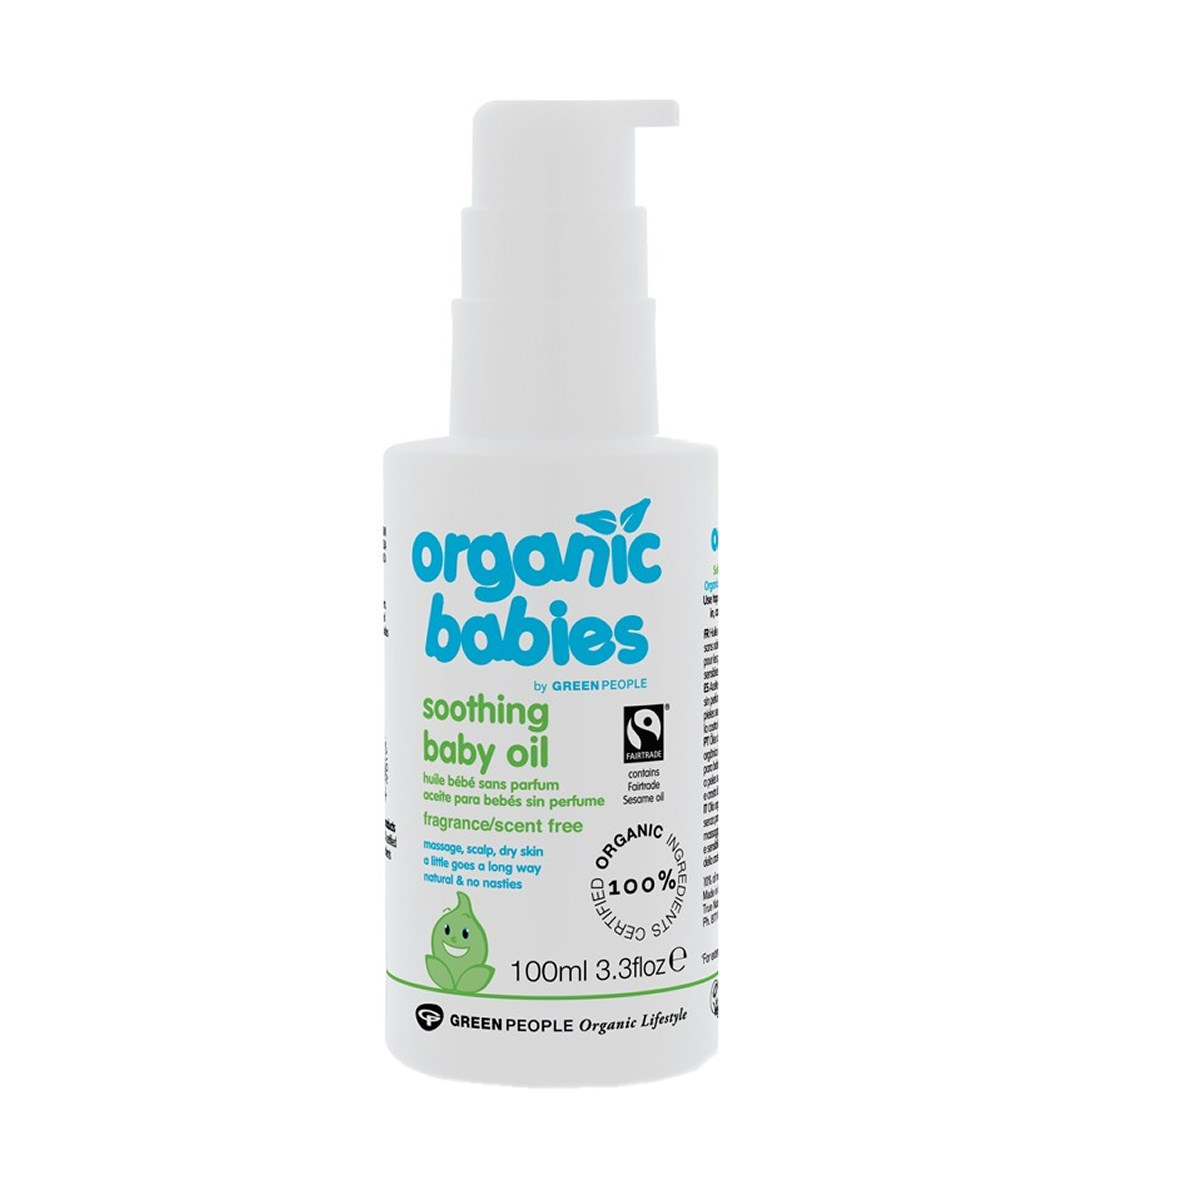 Green People Organic Babies Soothing Baby Oil Scent Free